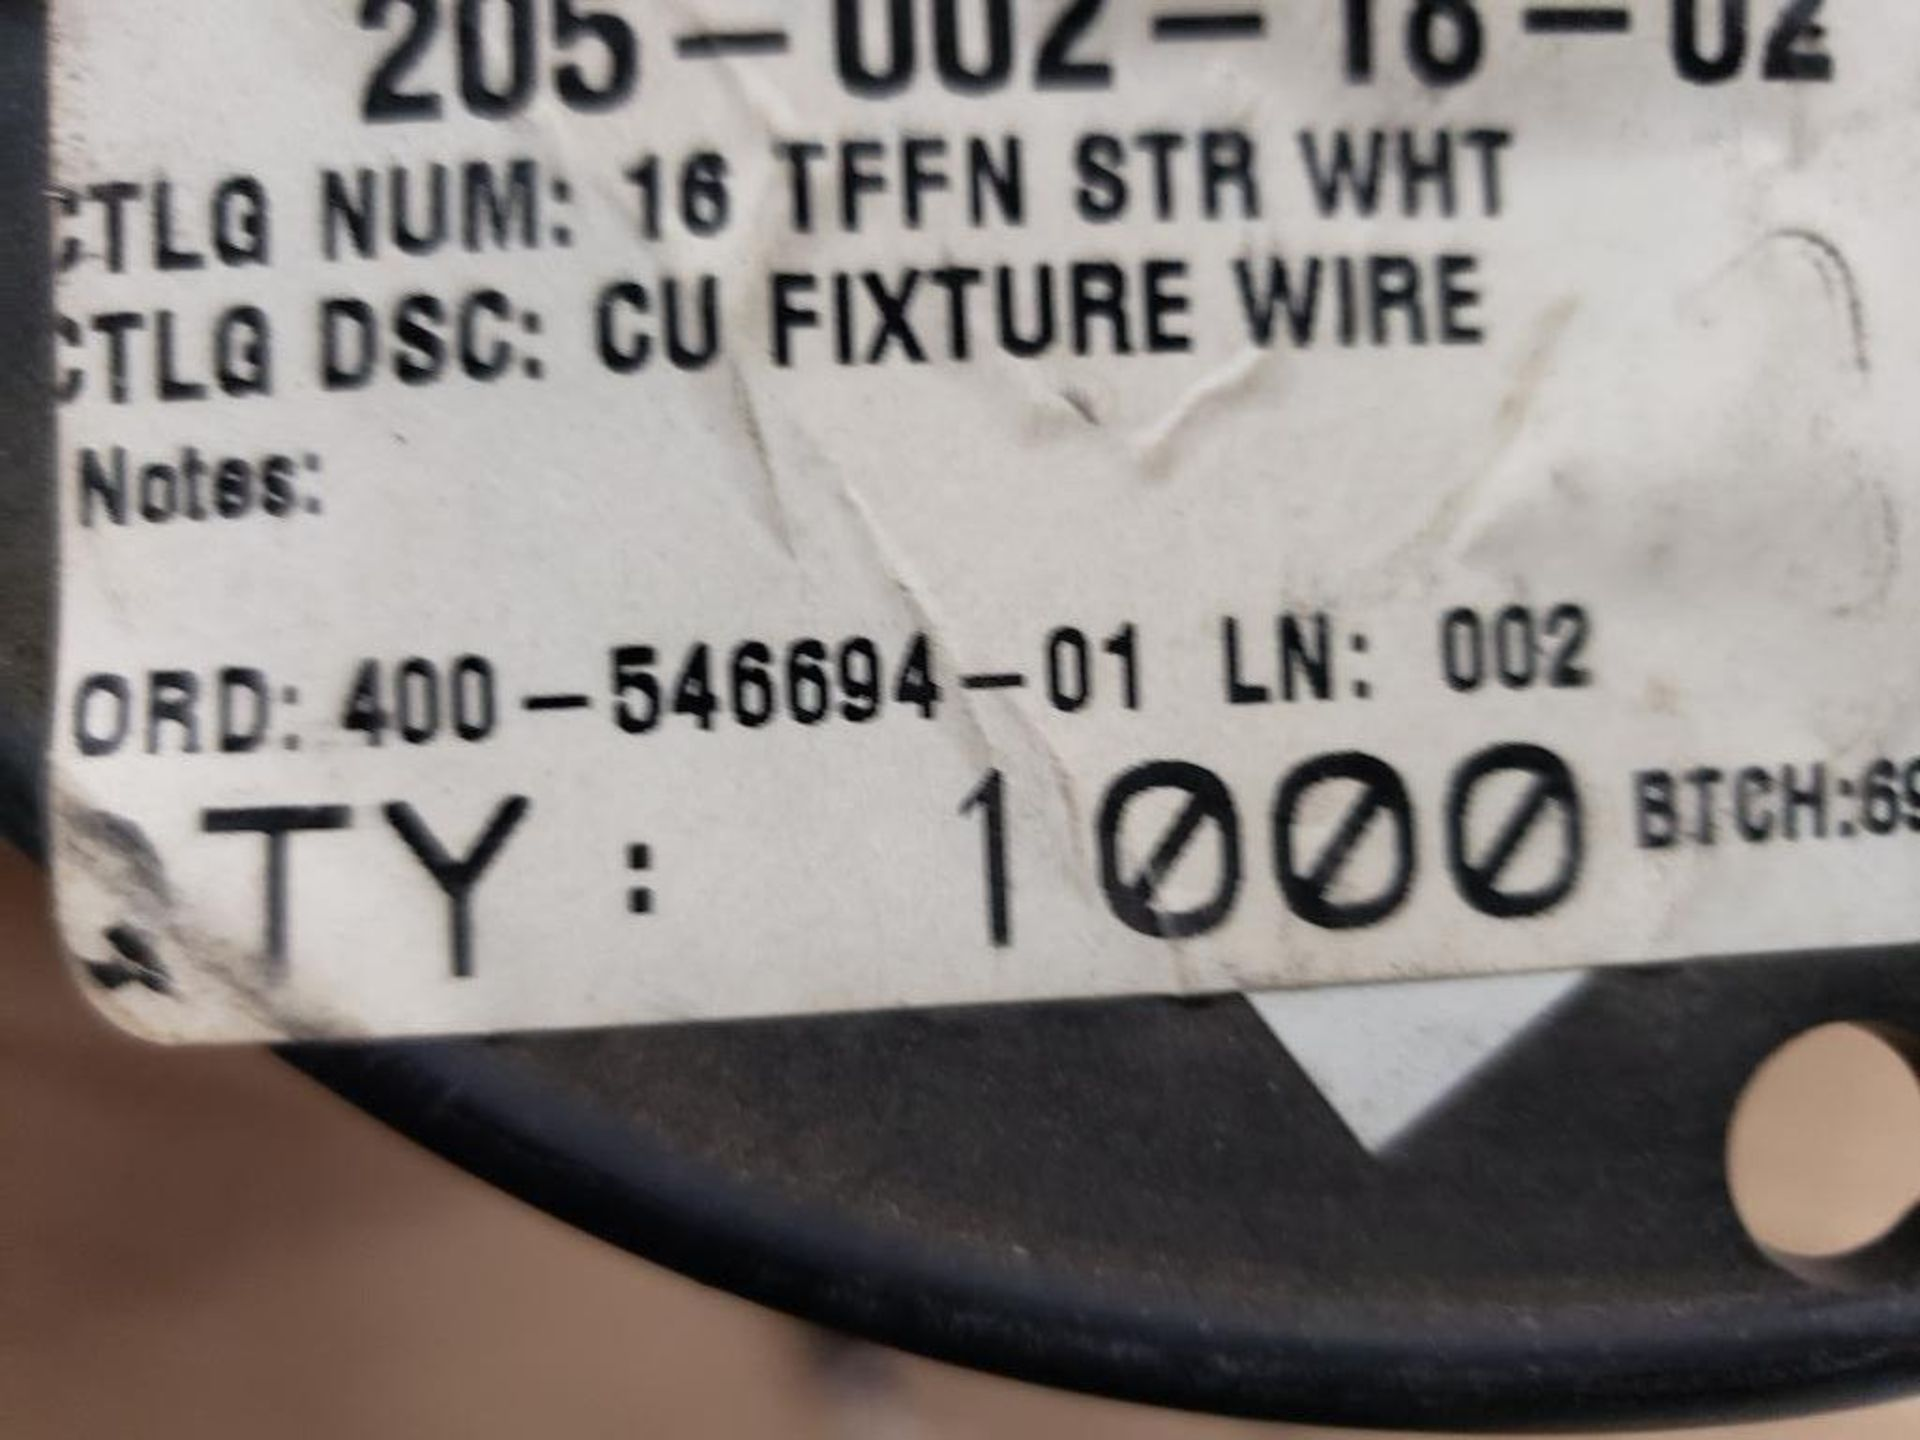 Qty 4 - Spool of CME contractor wire. 16-RED TFFN, 16-WHITE TFFN. - Image 4 of 5